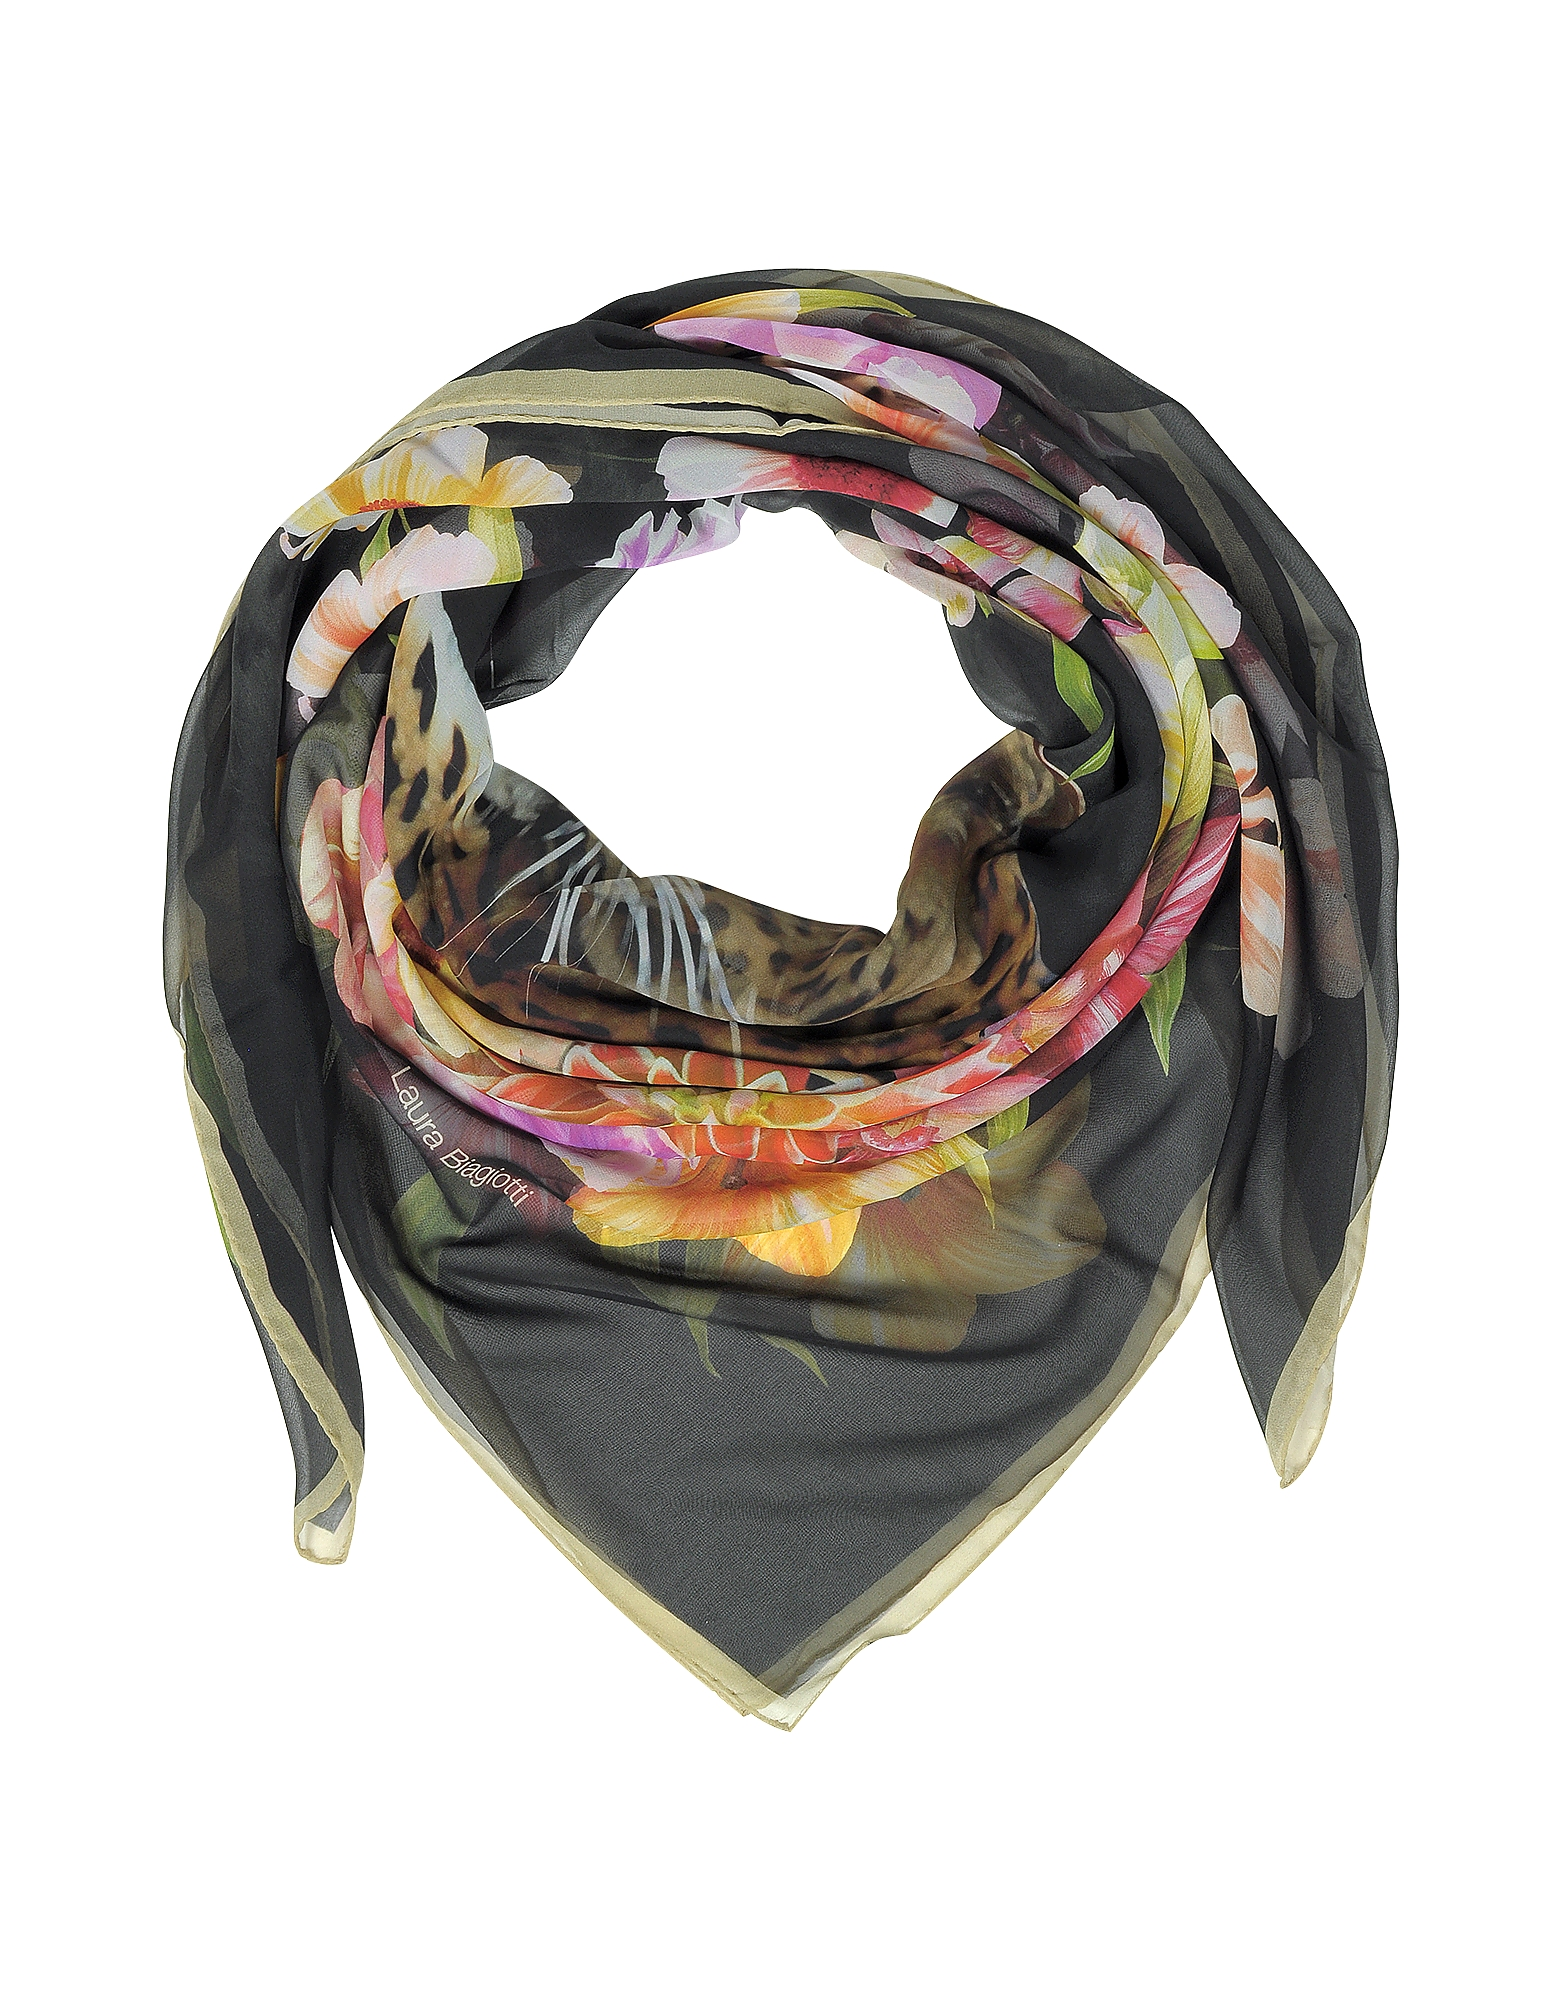 Image of Laura Biagiotti Designer Scarves, Black Leopard and Flowers Print Silk Shawl